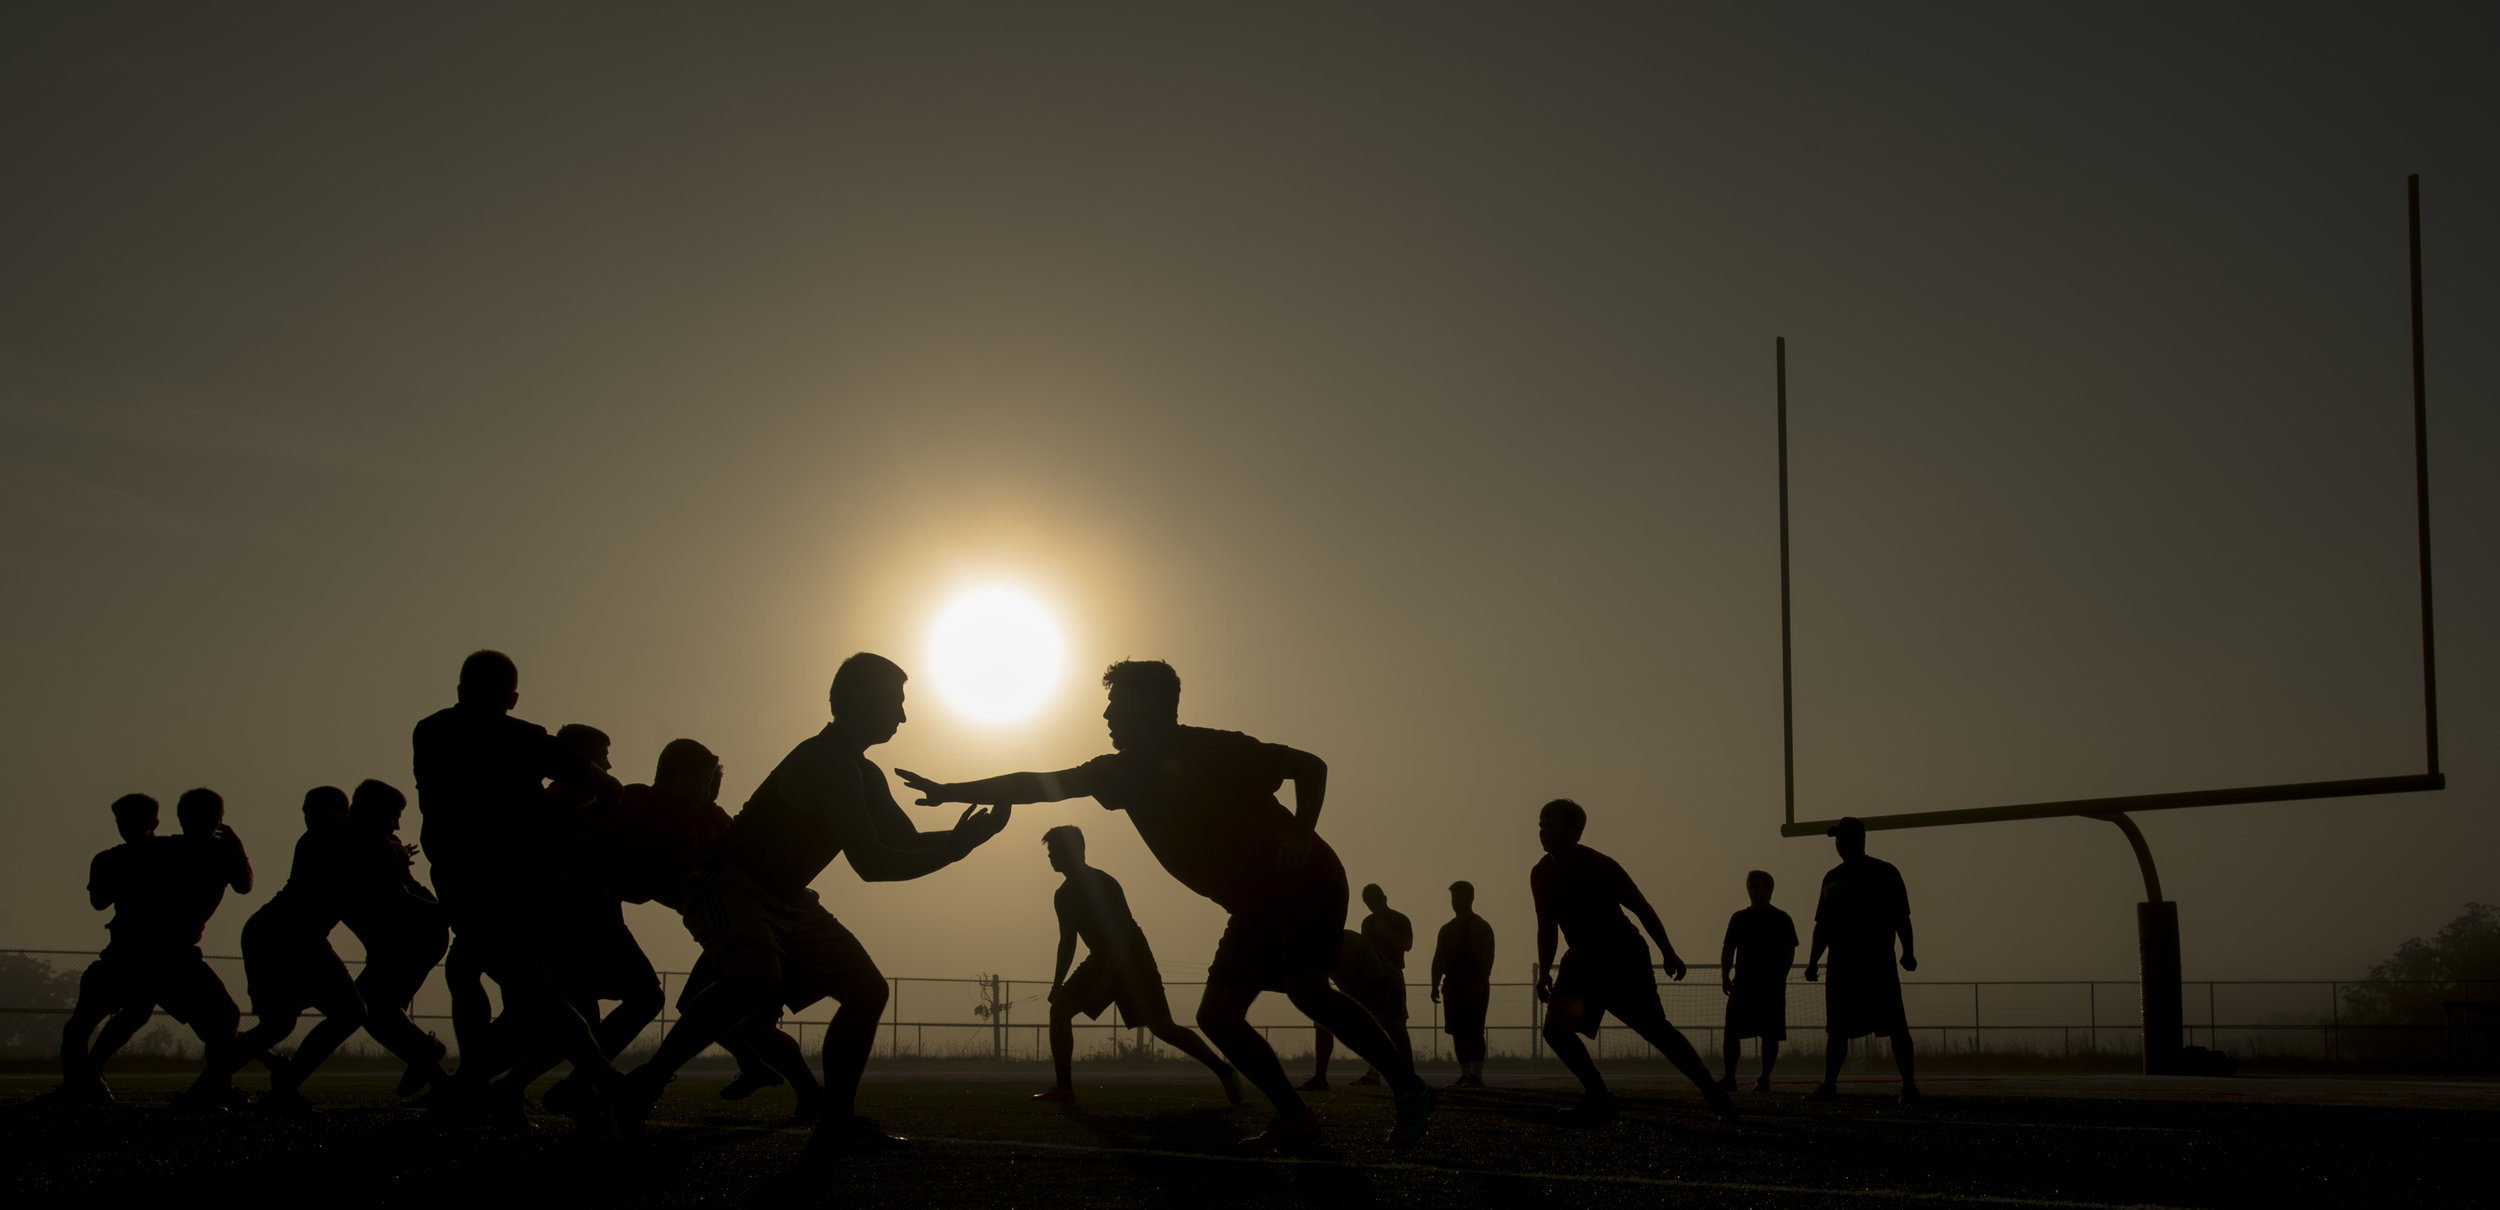 2017 TAB The sun rises over West Allegheny's defending Class 5A WPIAL champion defense as they work out at 7 a.m. during a preseason practice on Wednesday, July 26, 2017 at West Allegheny High School. (Steph Chambers/Post-Gazette)